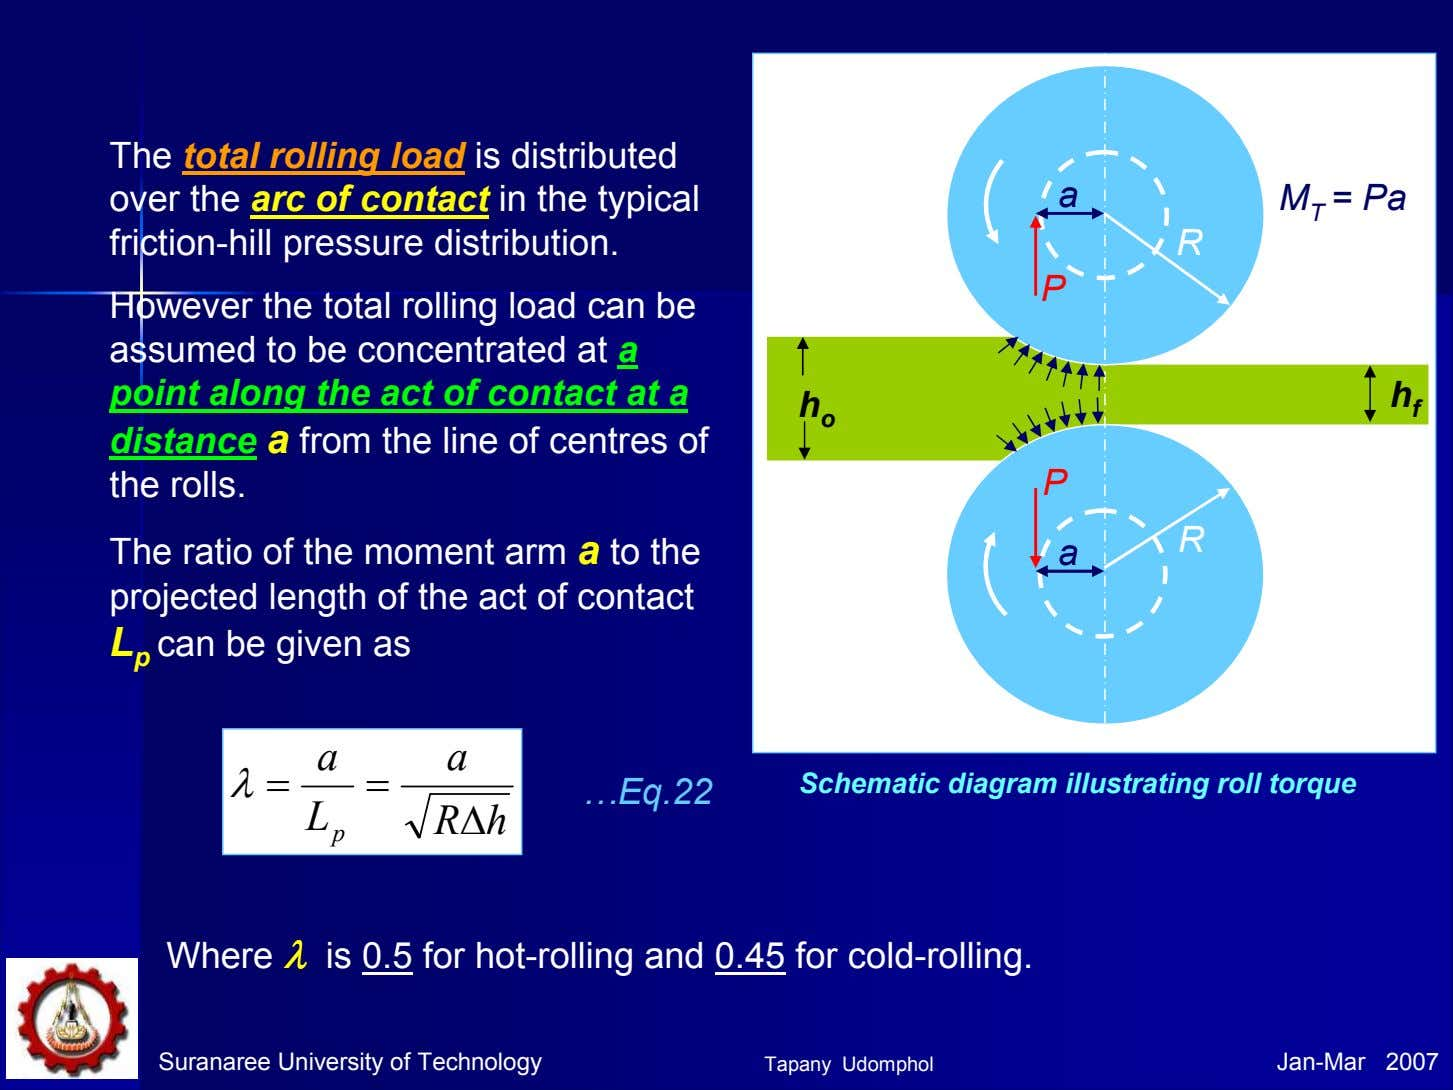 The total rolling load is distributed over the arc of contact in the typical friction-hill